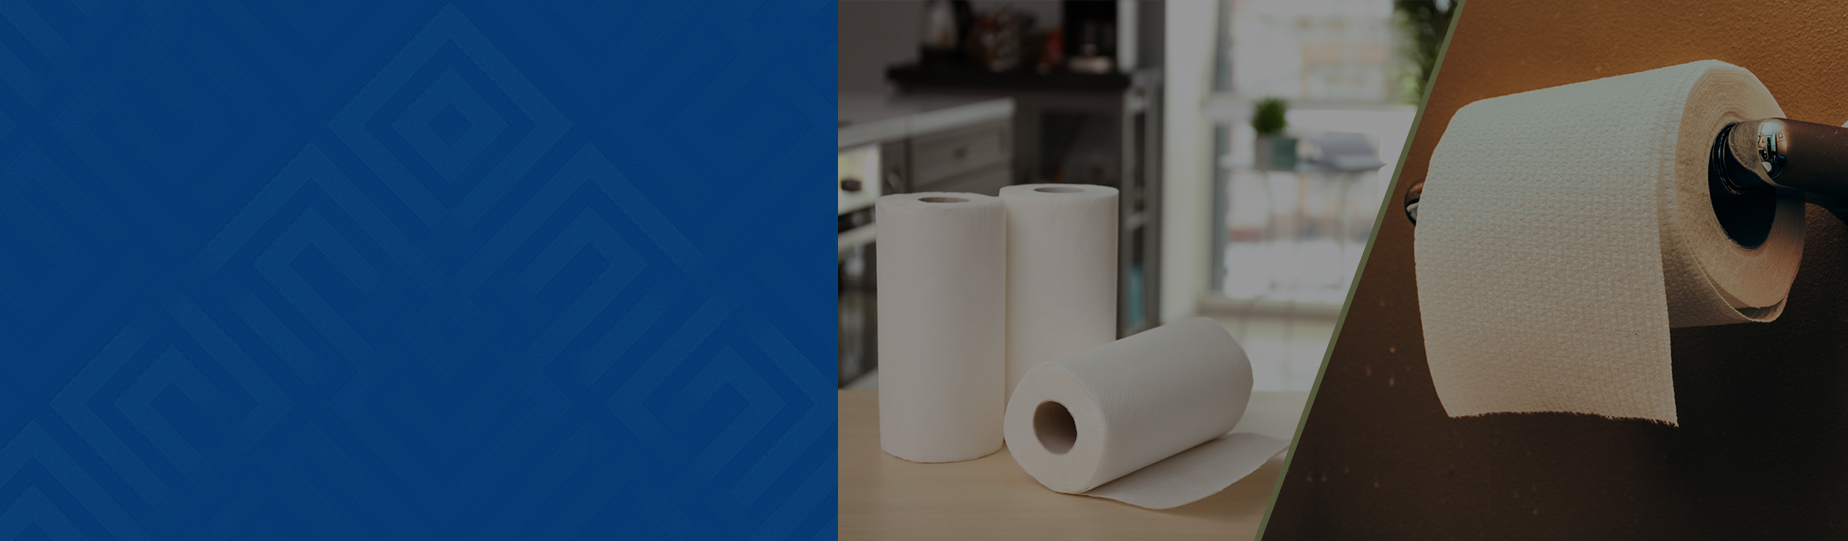 Paper towel, toilet paper, dispensers (free installations)